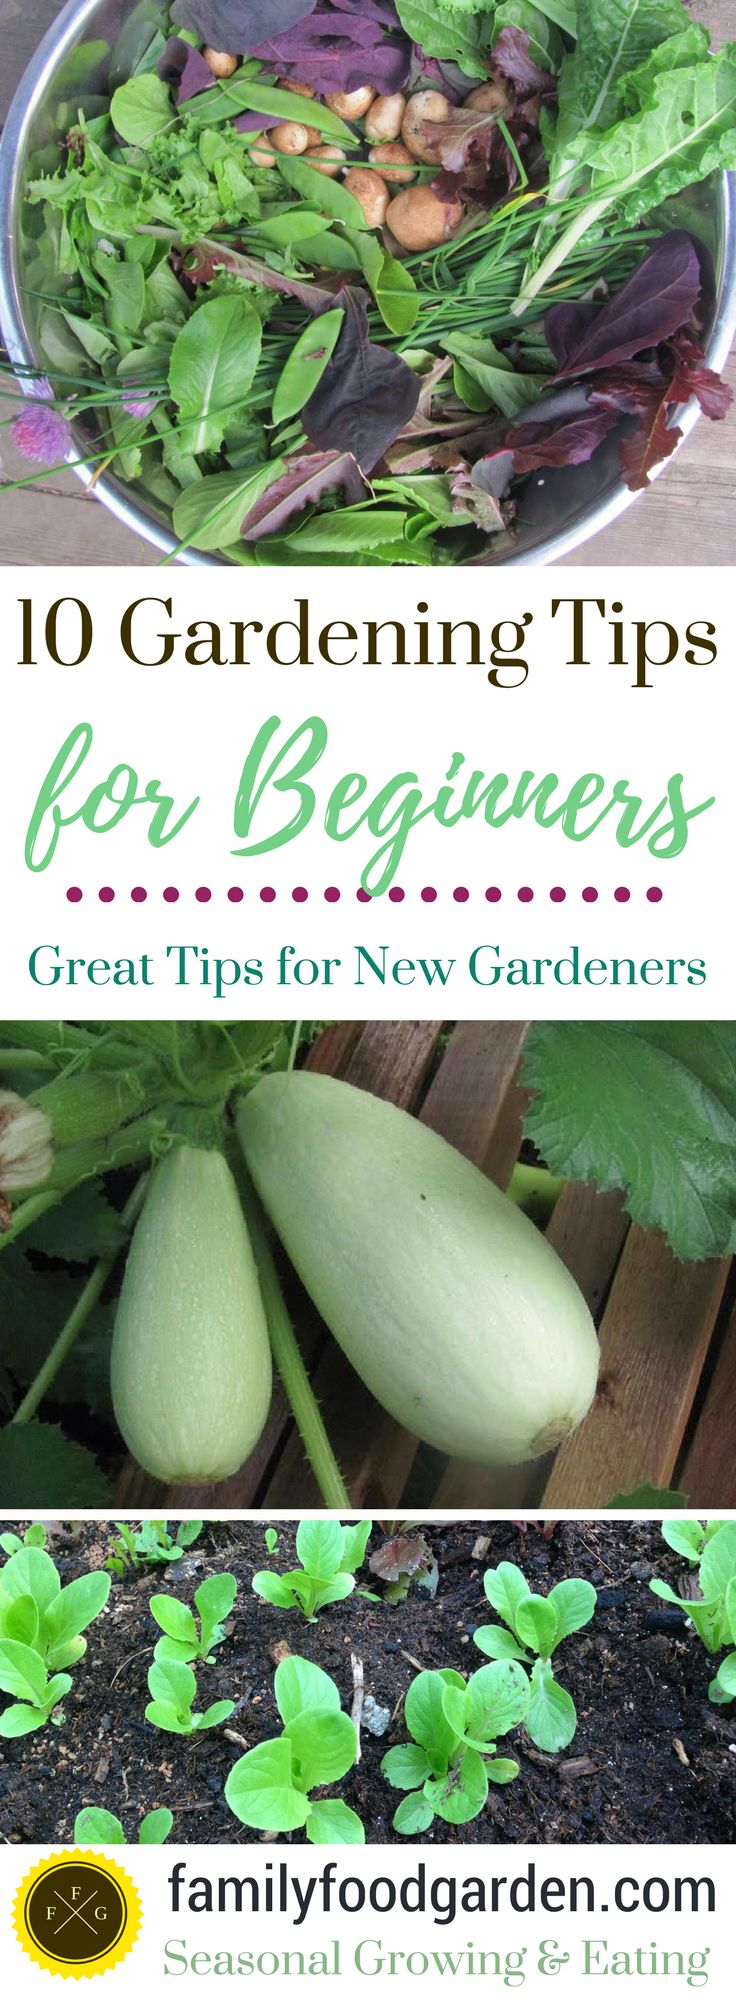 Beginners learn the most from their mistakes but it's nice to have some gardening wisdom for a better season Here are 10 beginner gardening tips that I've gathered from my own gardening experience and all the mistakes that I've made over the years. :)   Start Small Beginners may wish to grow ev